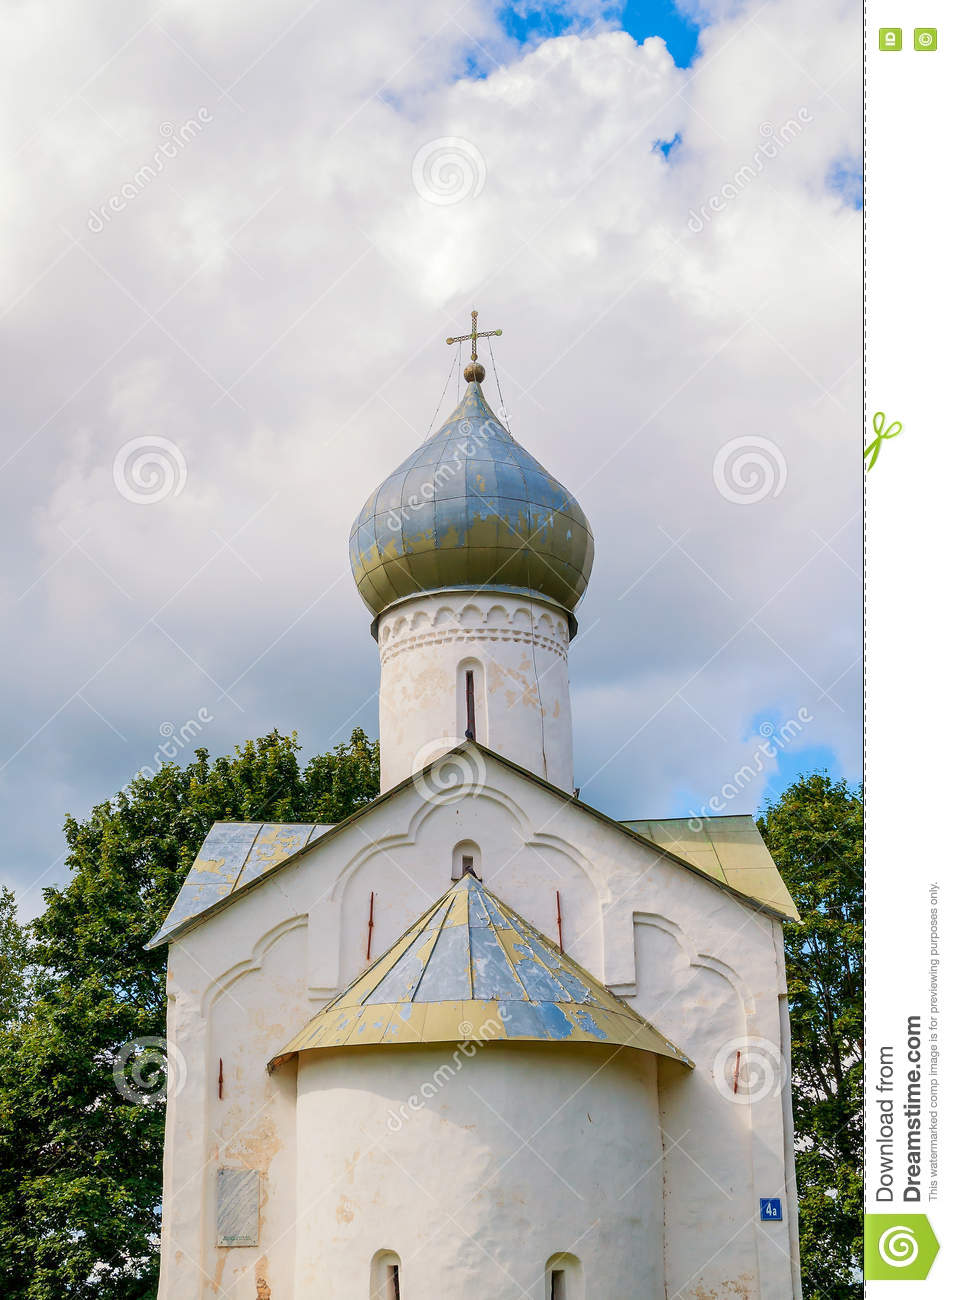 Closeup view of dome of Twelve Apostles on the Abyss church in Veliky Novgorod, Russia.